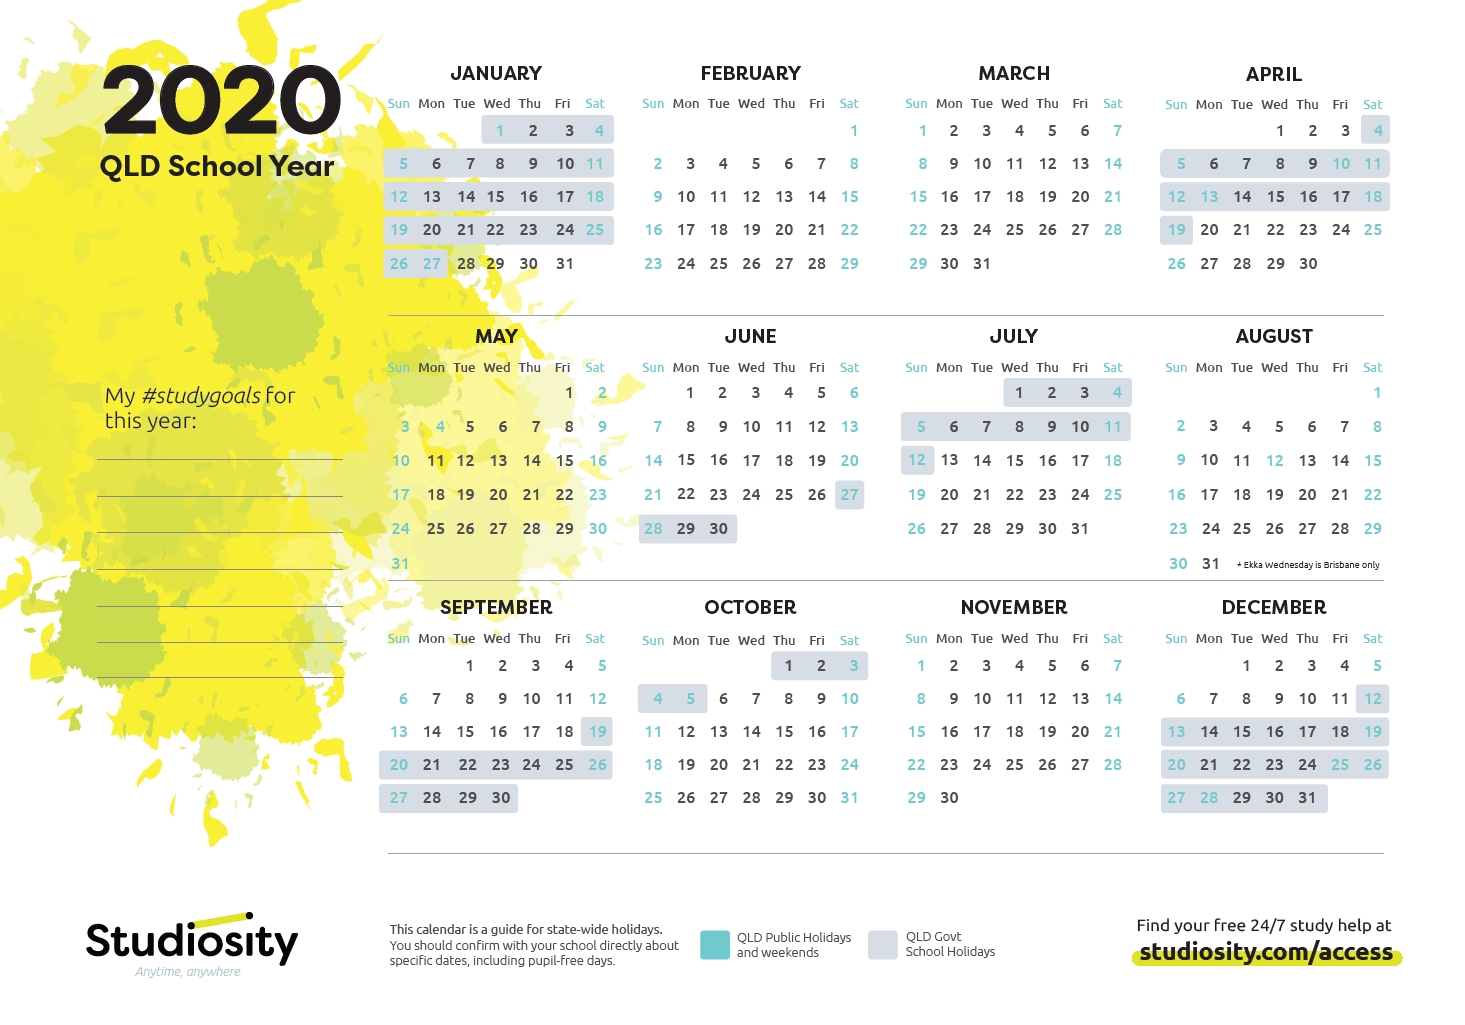 School Terms And Public Holiday Dates For Qld In 2020-2020 Printable Qld School Holidays